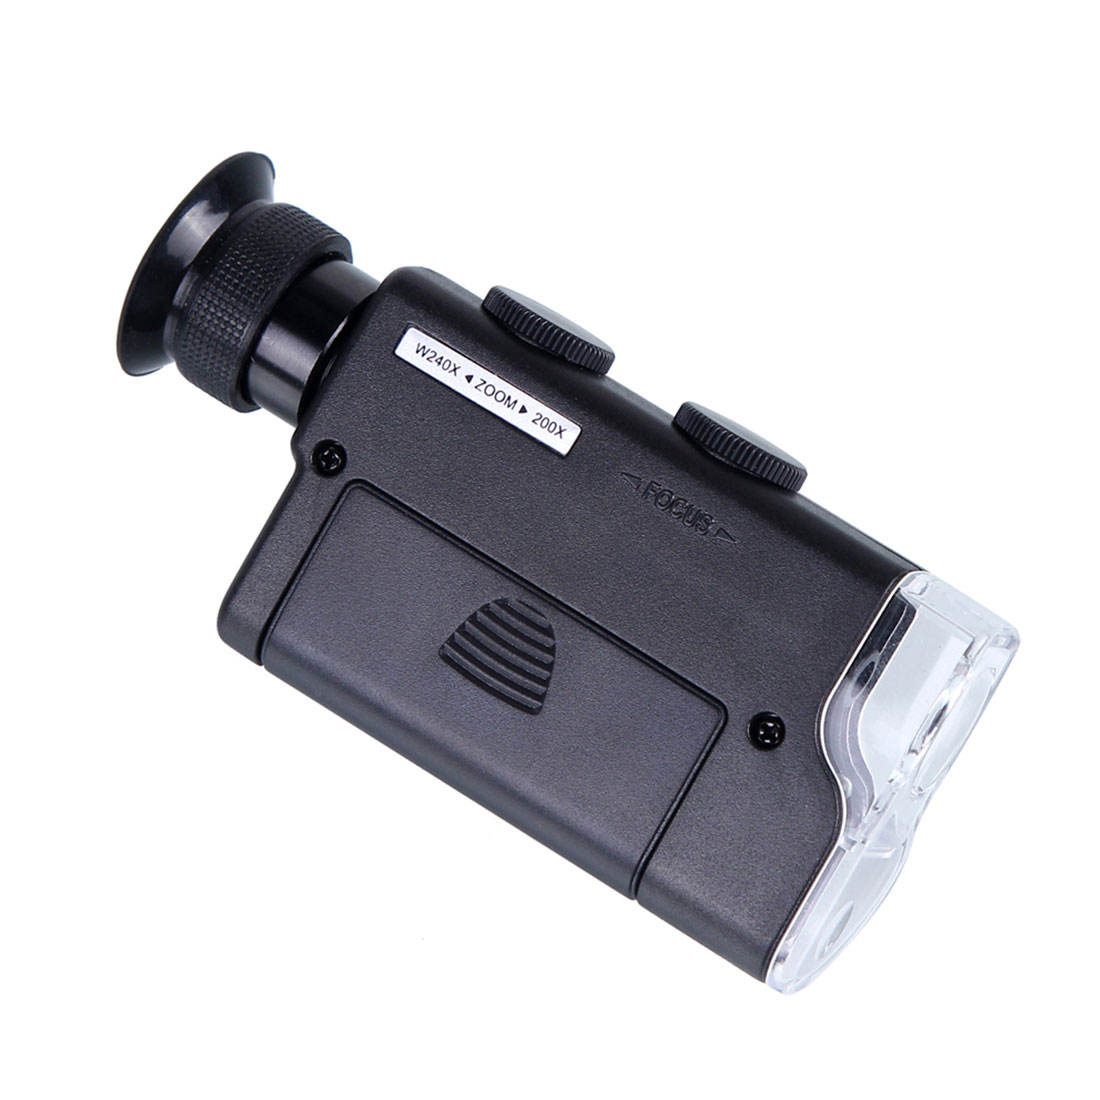 Mini Portable Microscope Pocket 200X~240X Handheld LED Lamp Light Loupe Zoom Magnifier Magnifying Glass Pocket Lens